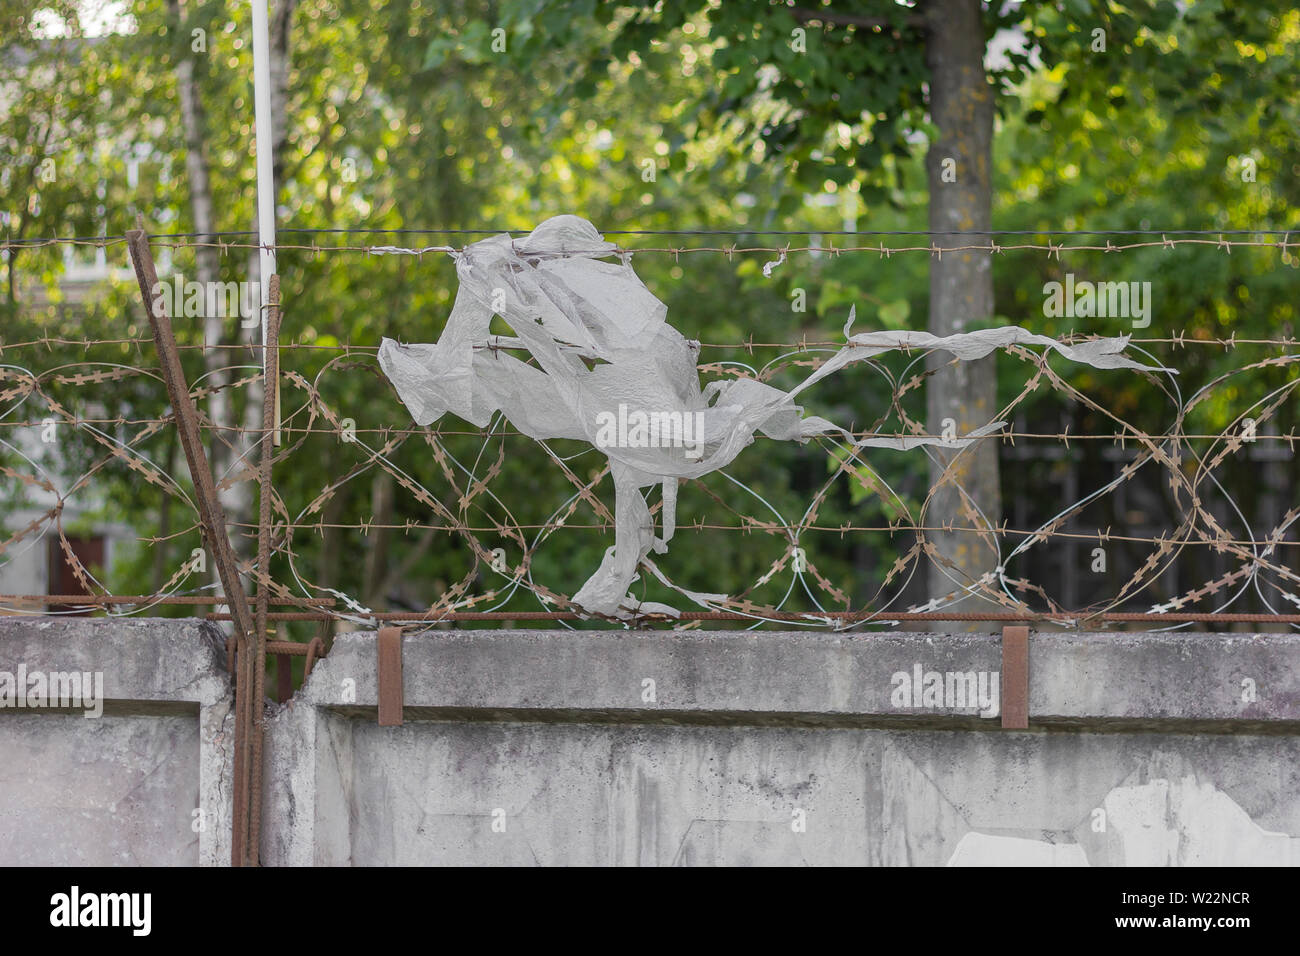 barbed wire prison fence security forbidden Stock Photo